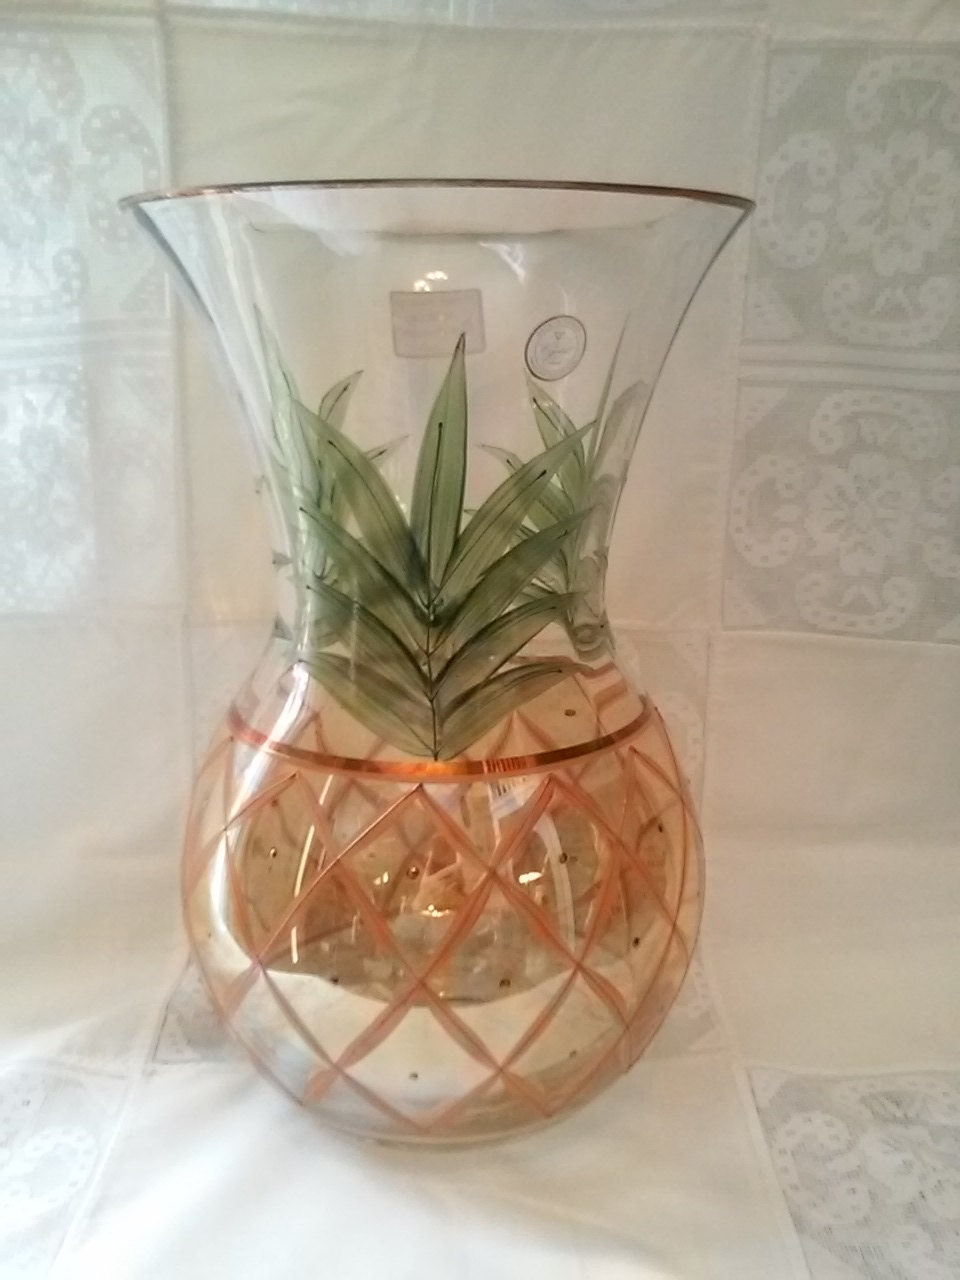 Romanian Clear Crystal Hand Painted Pineapple Vase